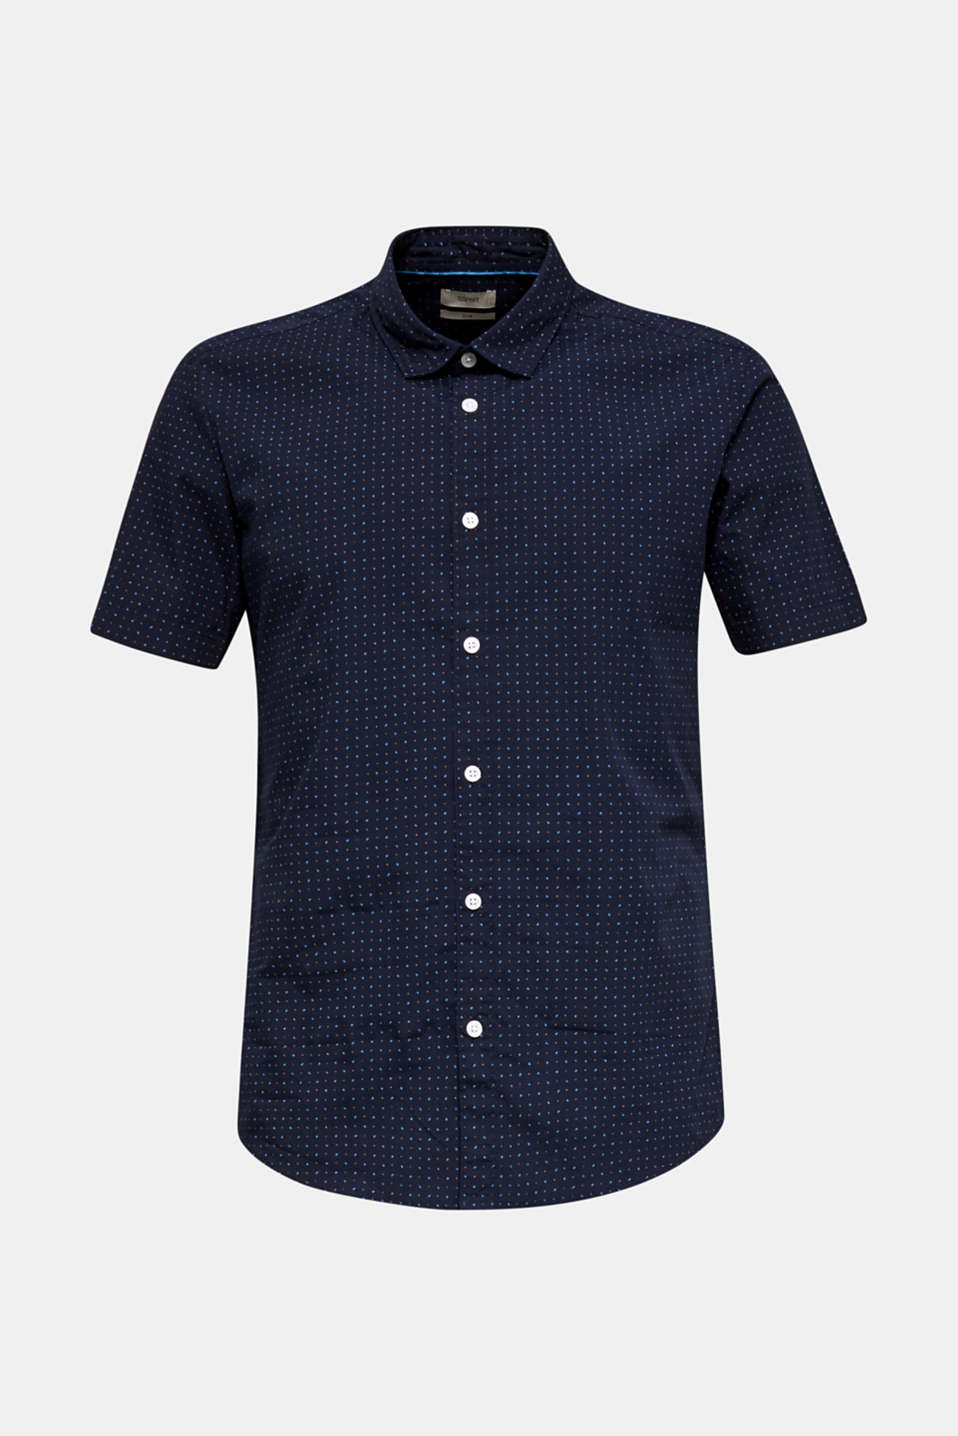 Shirt with micro print, 100% organic cotton, NAVY 4, detail image number 7